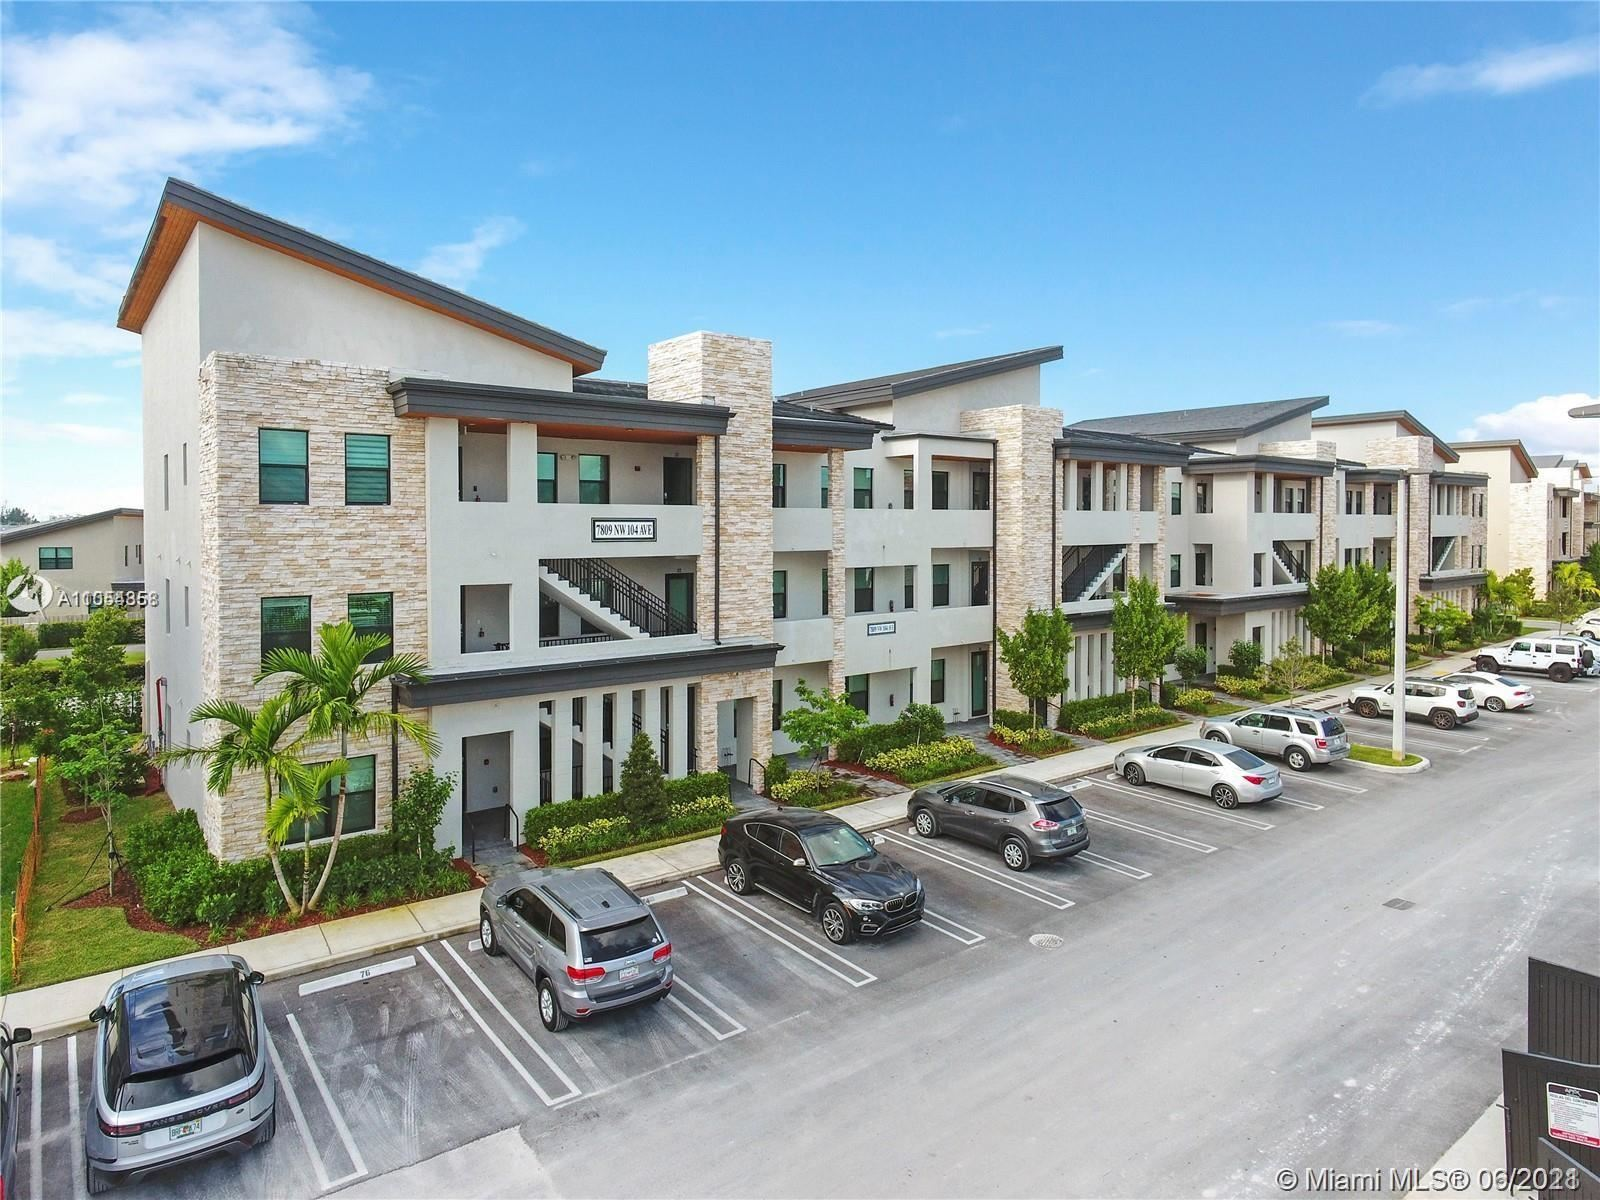 7809 NW 104th Ave #35, Doral, FL 33178 - #: A11054858